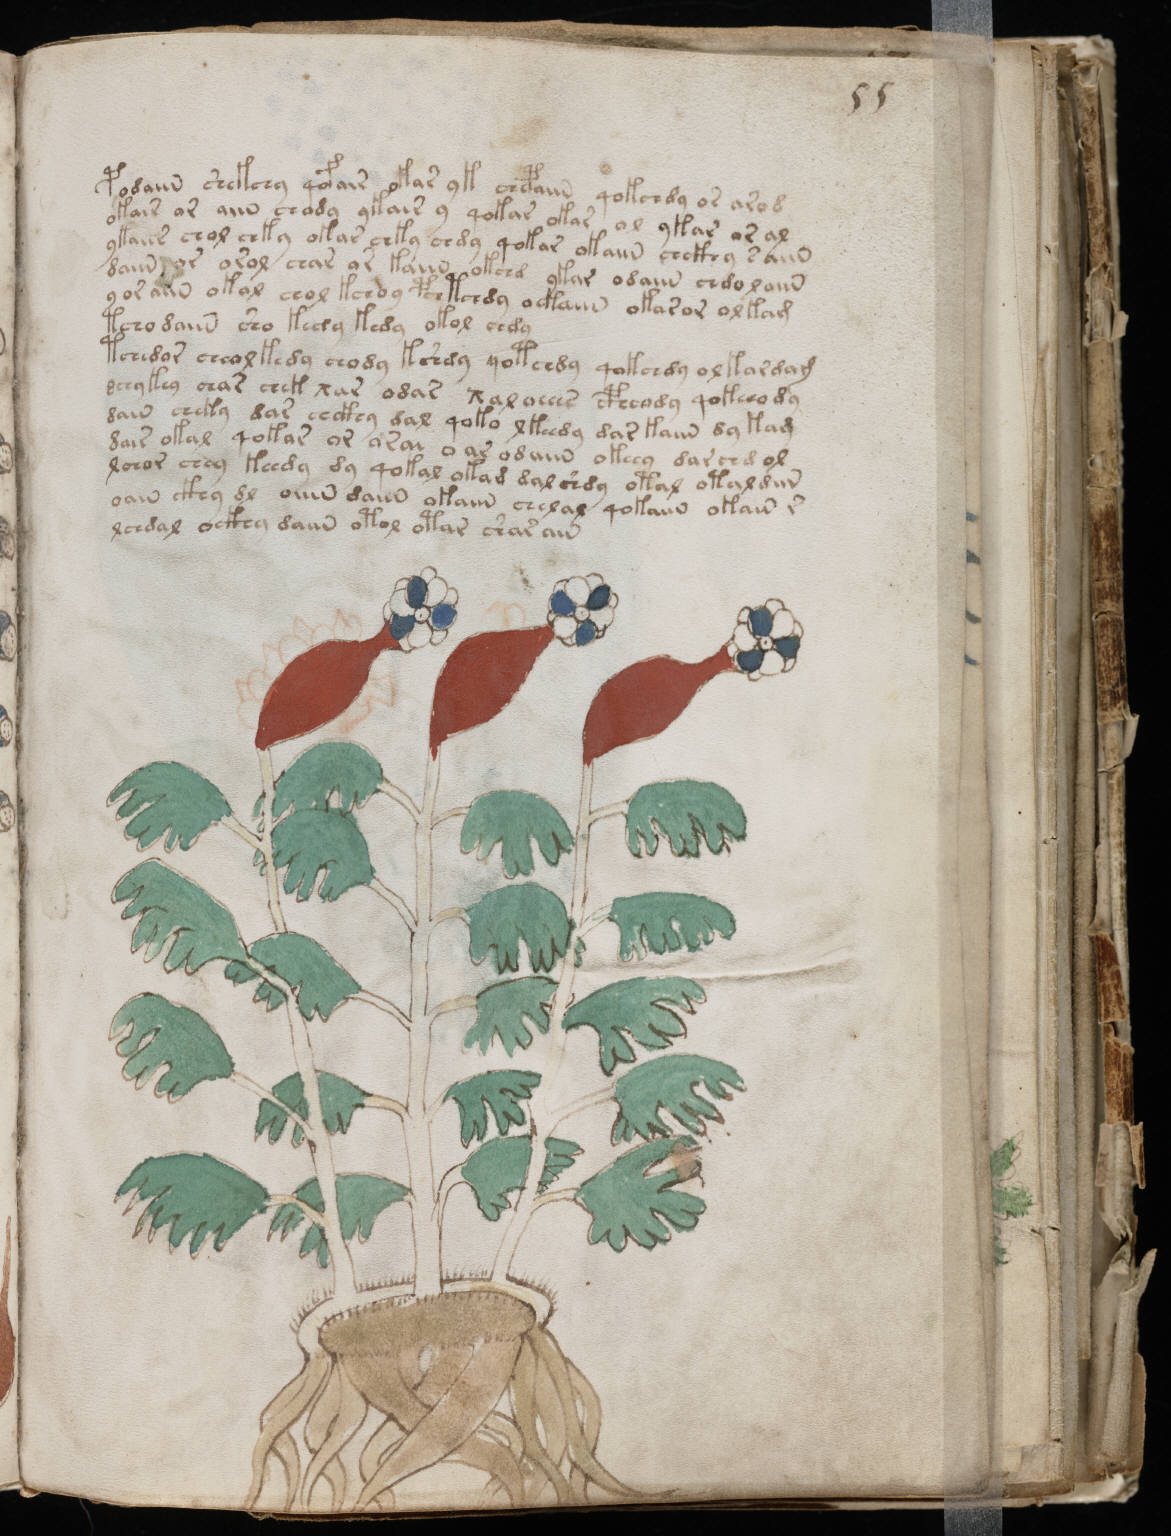 https://upload.wikimedia.org/wikipedia/commons/4/4b/Voynich_Manuscript_%28109%29.jpg